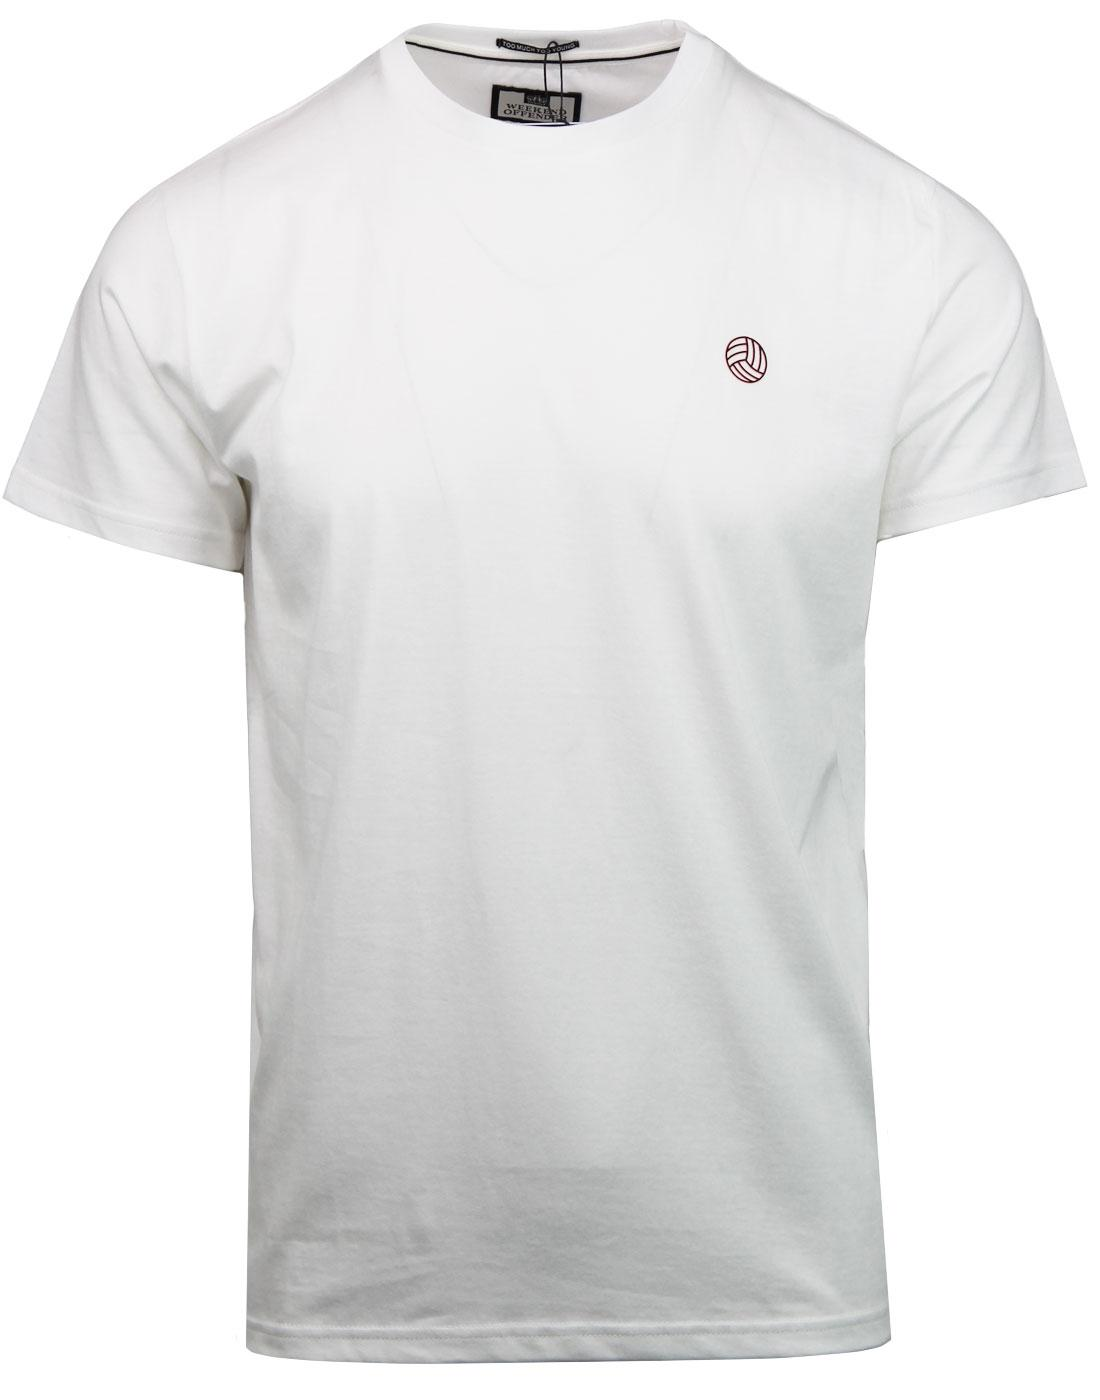 Shelley WEEKEND OFFENDER Retro AMF Football Tee W